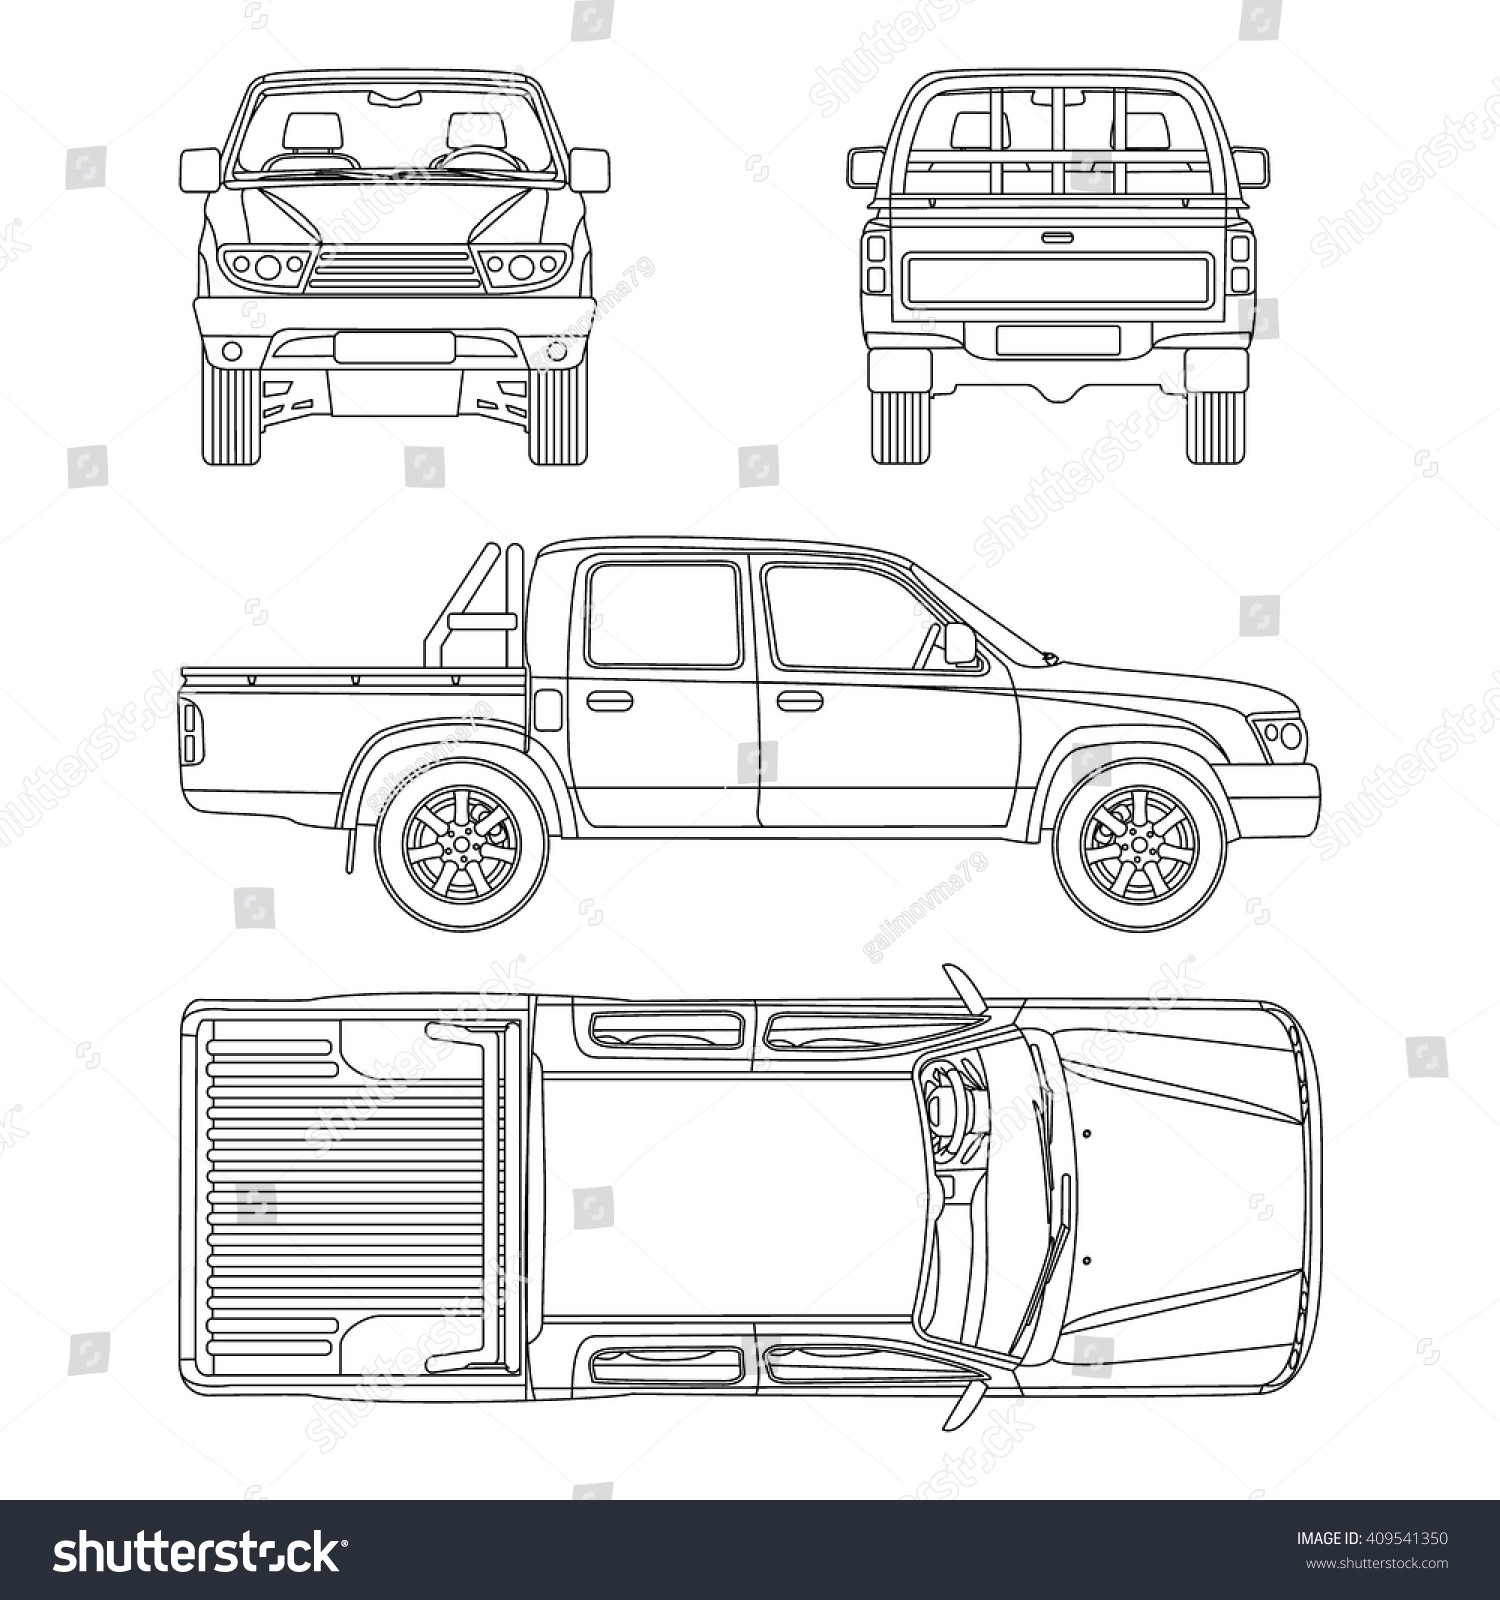 hight resolution of  vehicle accident report of truck damage diagram related post